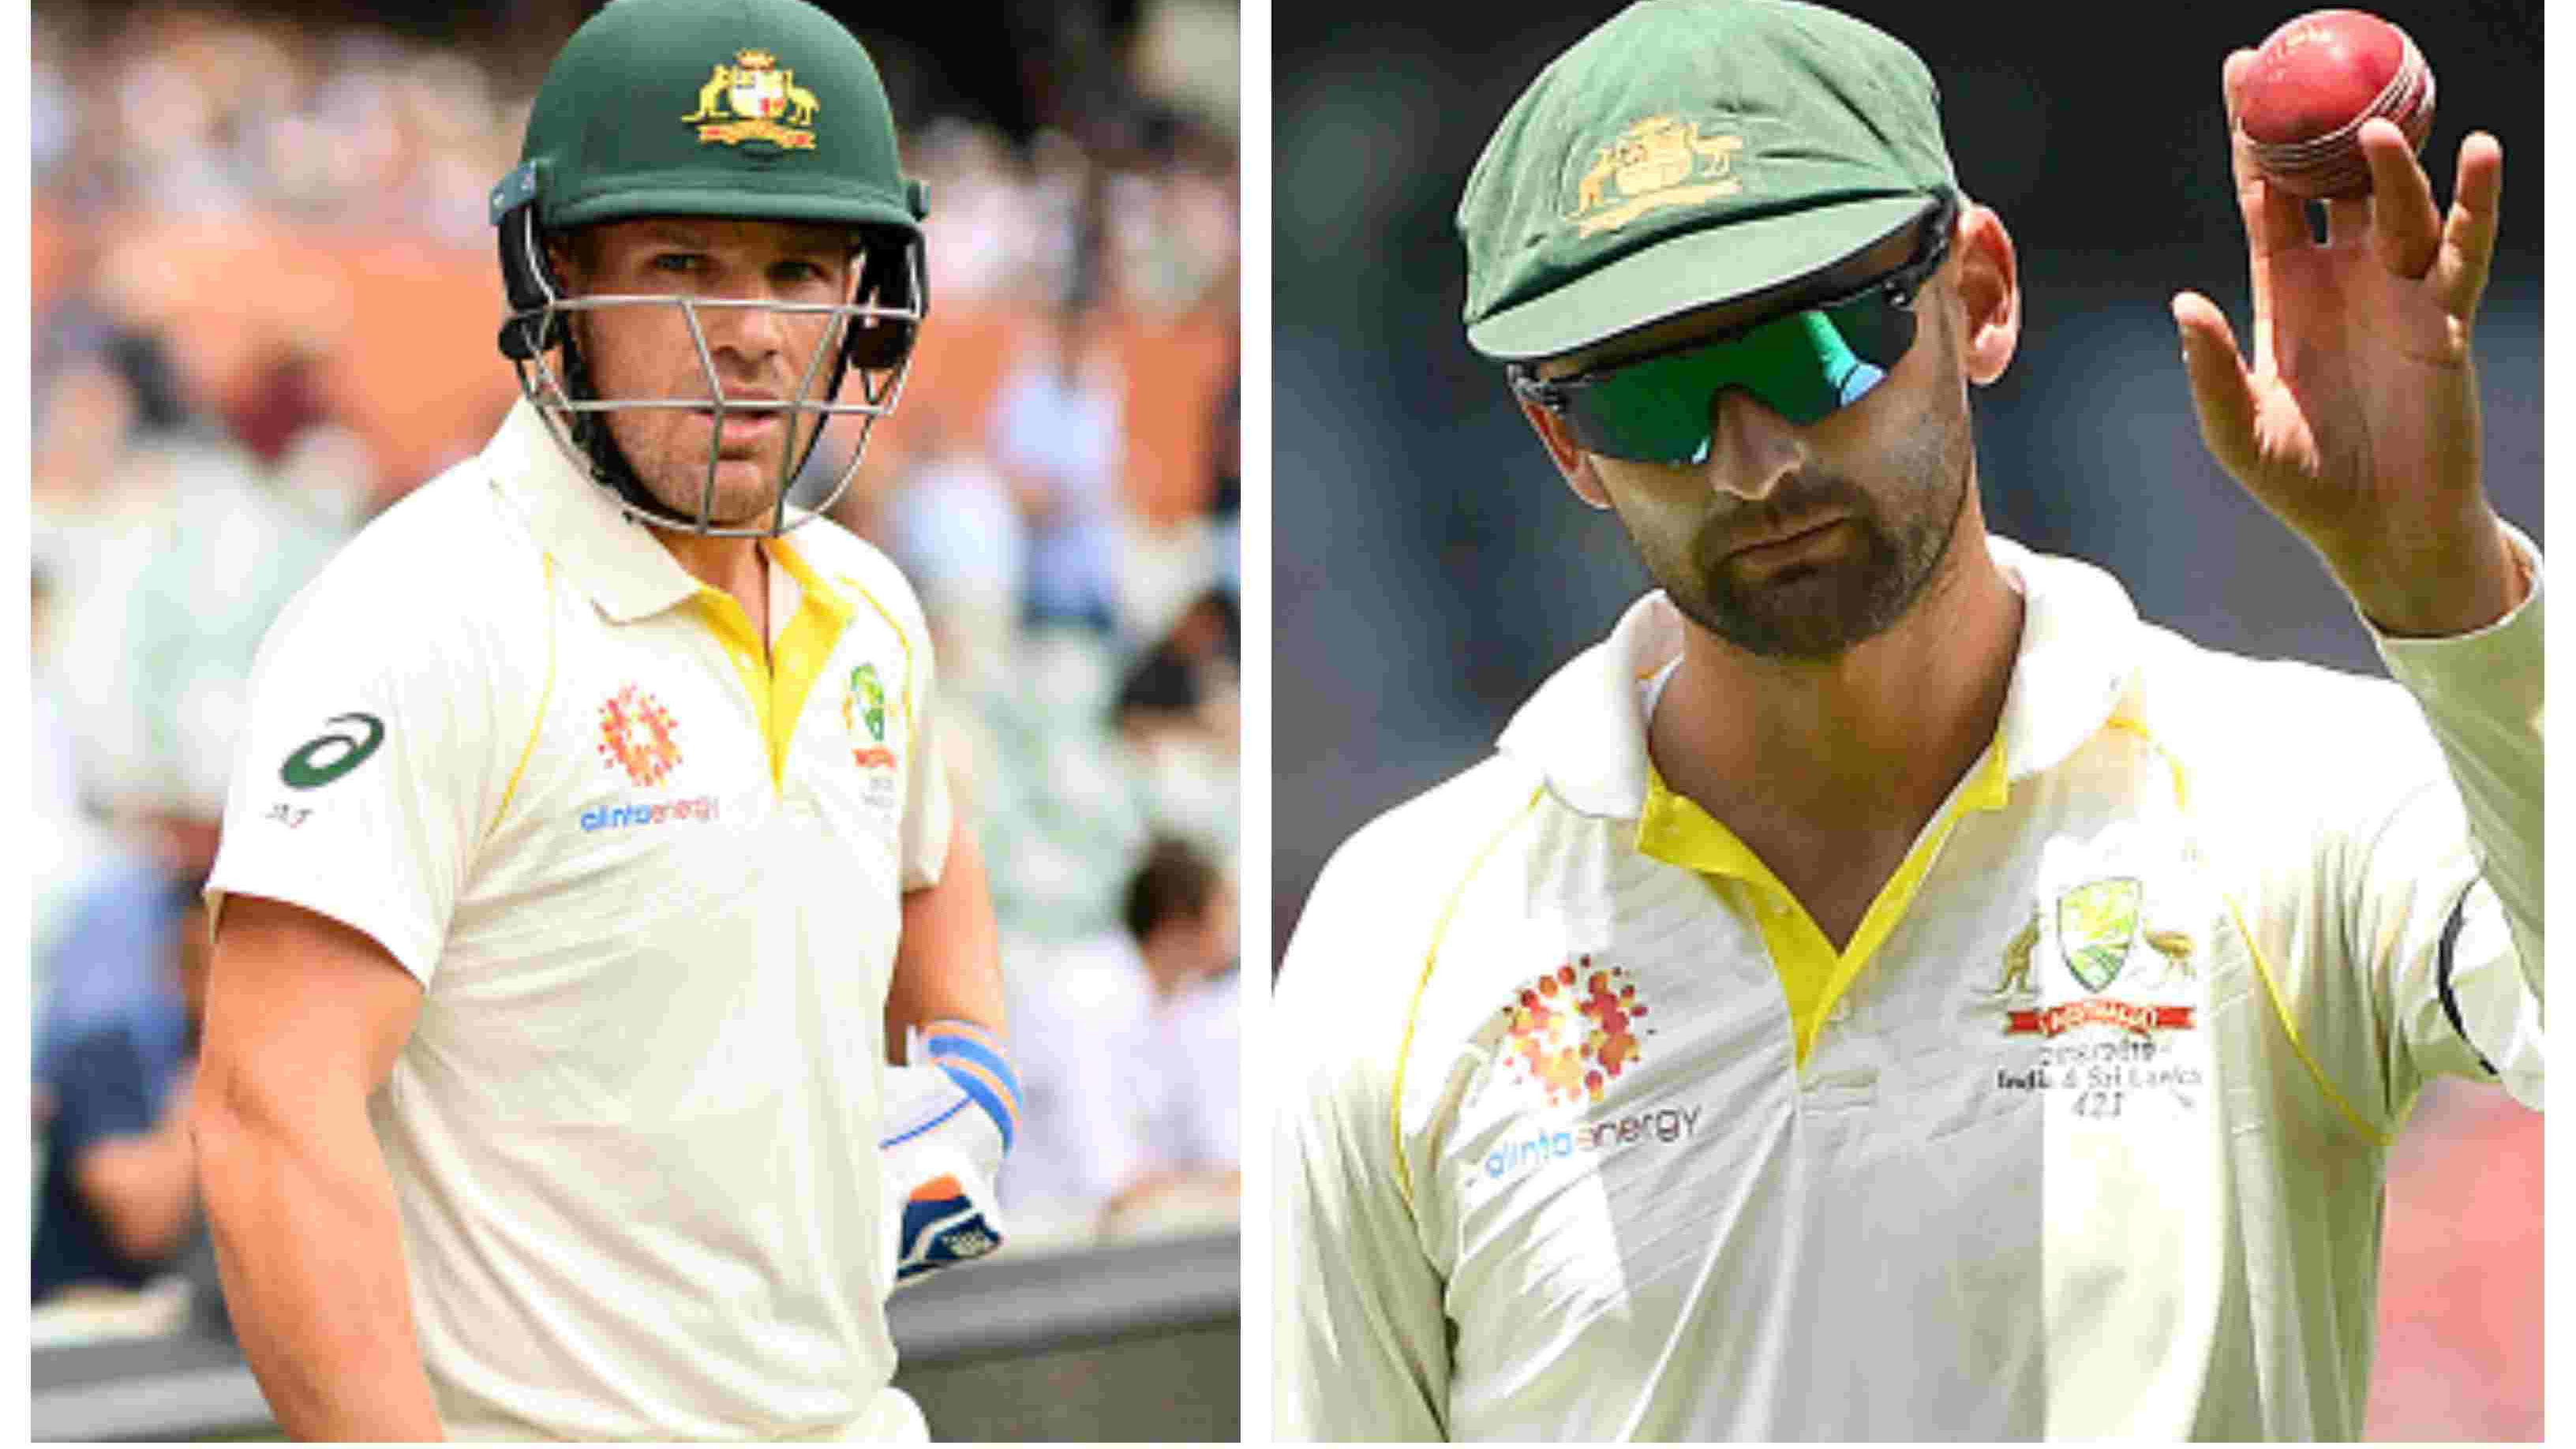 AUS v IND 2018-19: Finch highlights the threat of Nathan Lyon for Indian batsmen on the bouncy Perth wicket